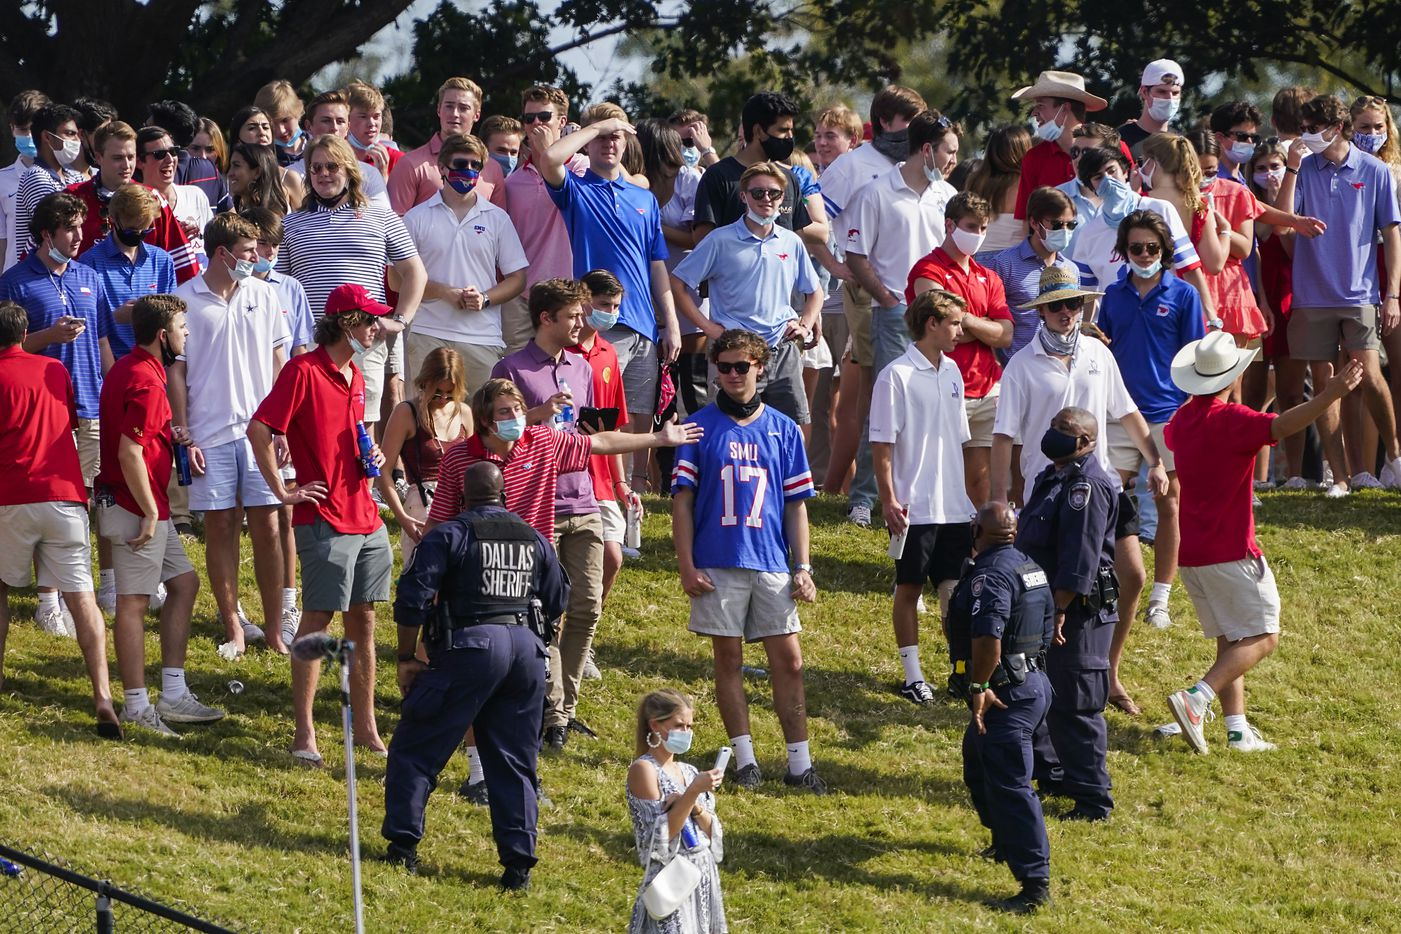 SMU students argue with law enforcement as they clear fans from the hill in the south end zone during the first half of an NCAA football game against Memphis at Ford Stadium on Saturday, Oct. 3, 2020, in Dallas.